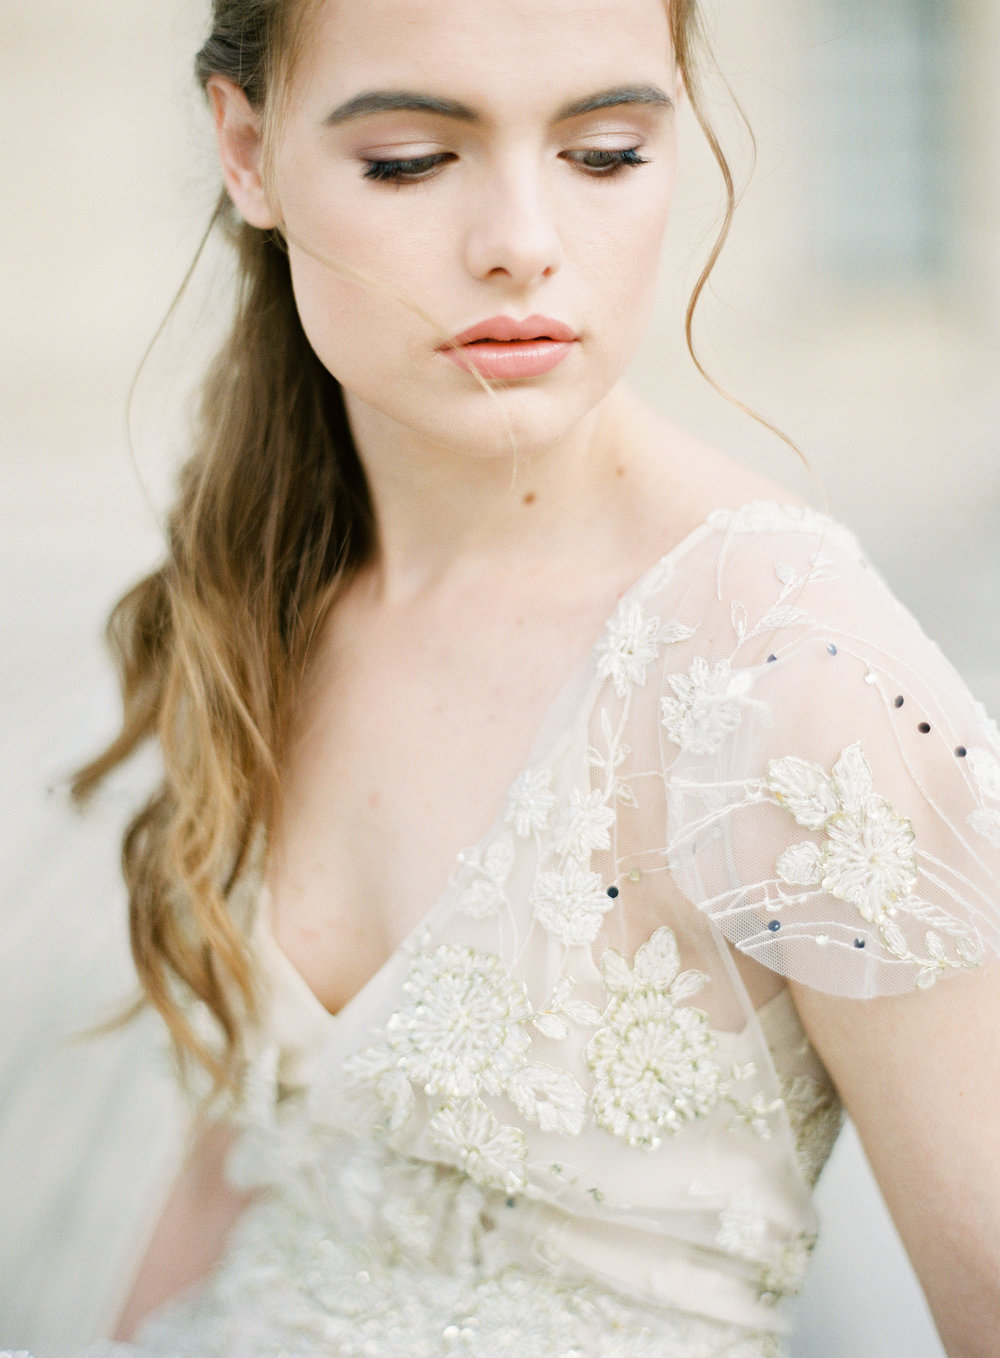 Paris Bride | Gold wedding gown | Ethereal Bride | Shop Gossamer | Bella Belle Shoes | Paris wedding photographer | Paris film photographer | France wedding photographer | France film photographer | Whiskers and Willow Photography.jpg.jpg